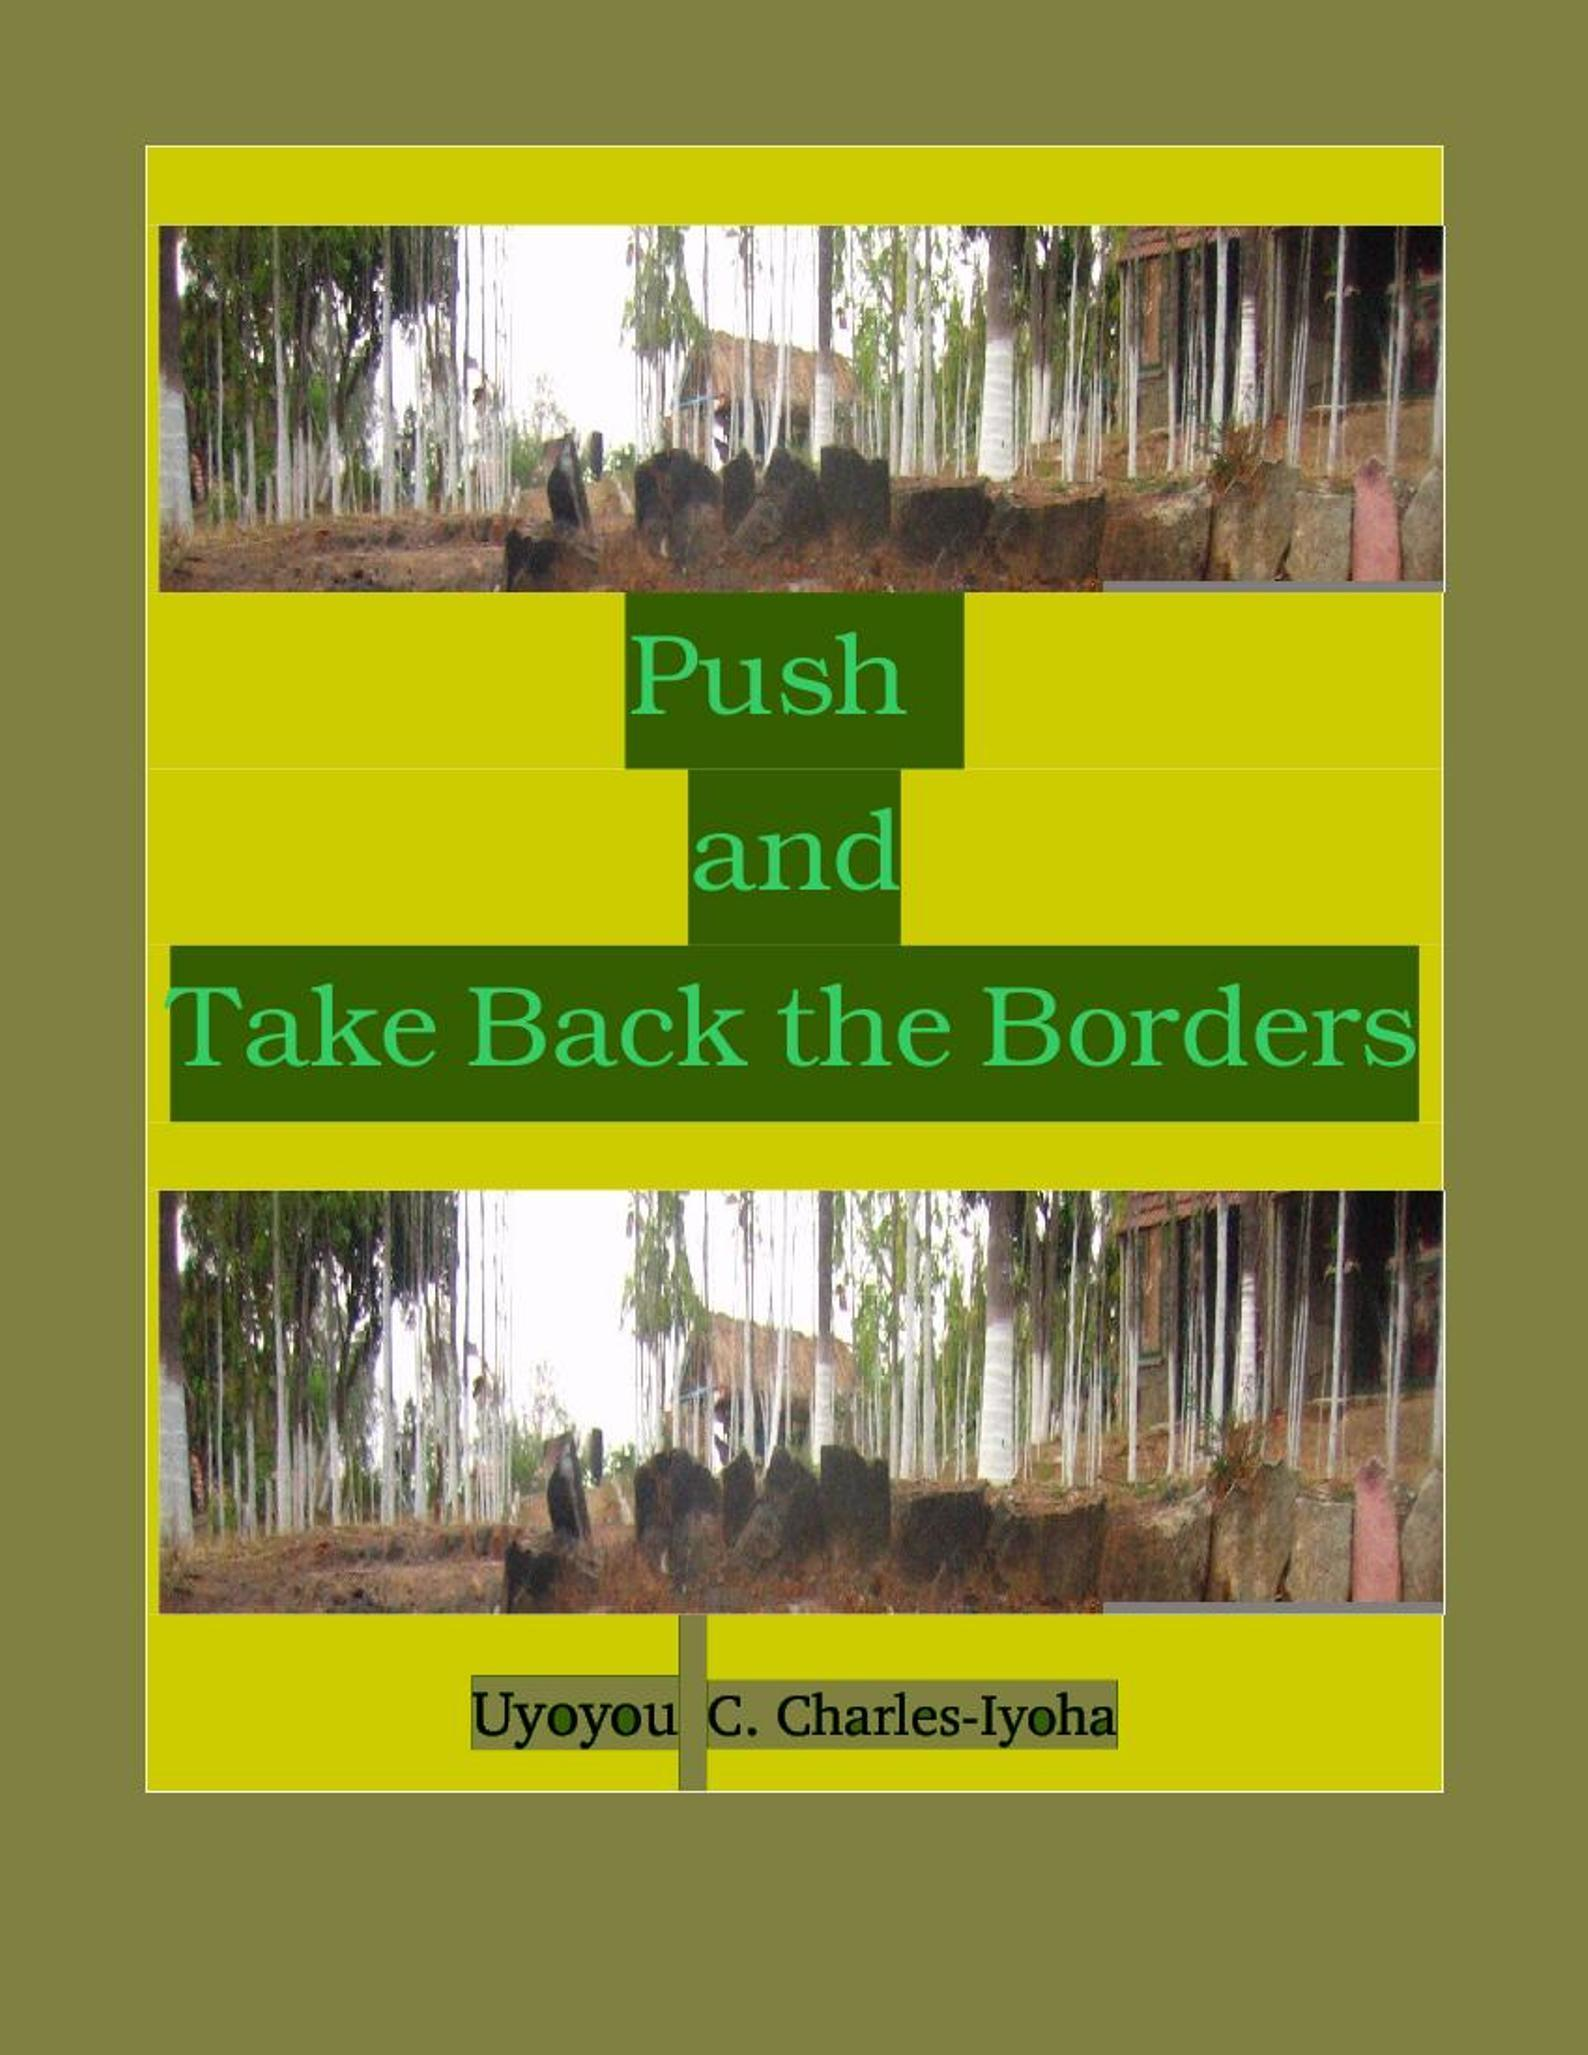 Push and Take Back the Borders  by  Uyoyou .C Charles-Iyoha